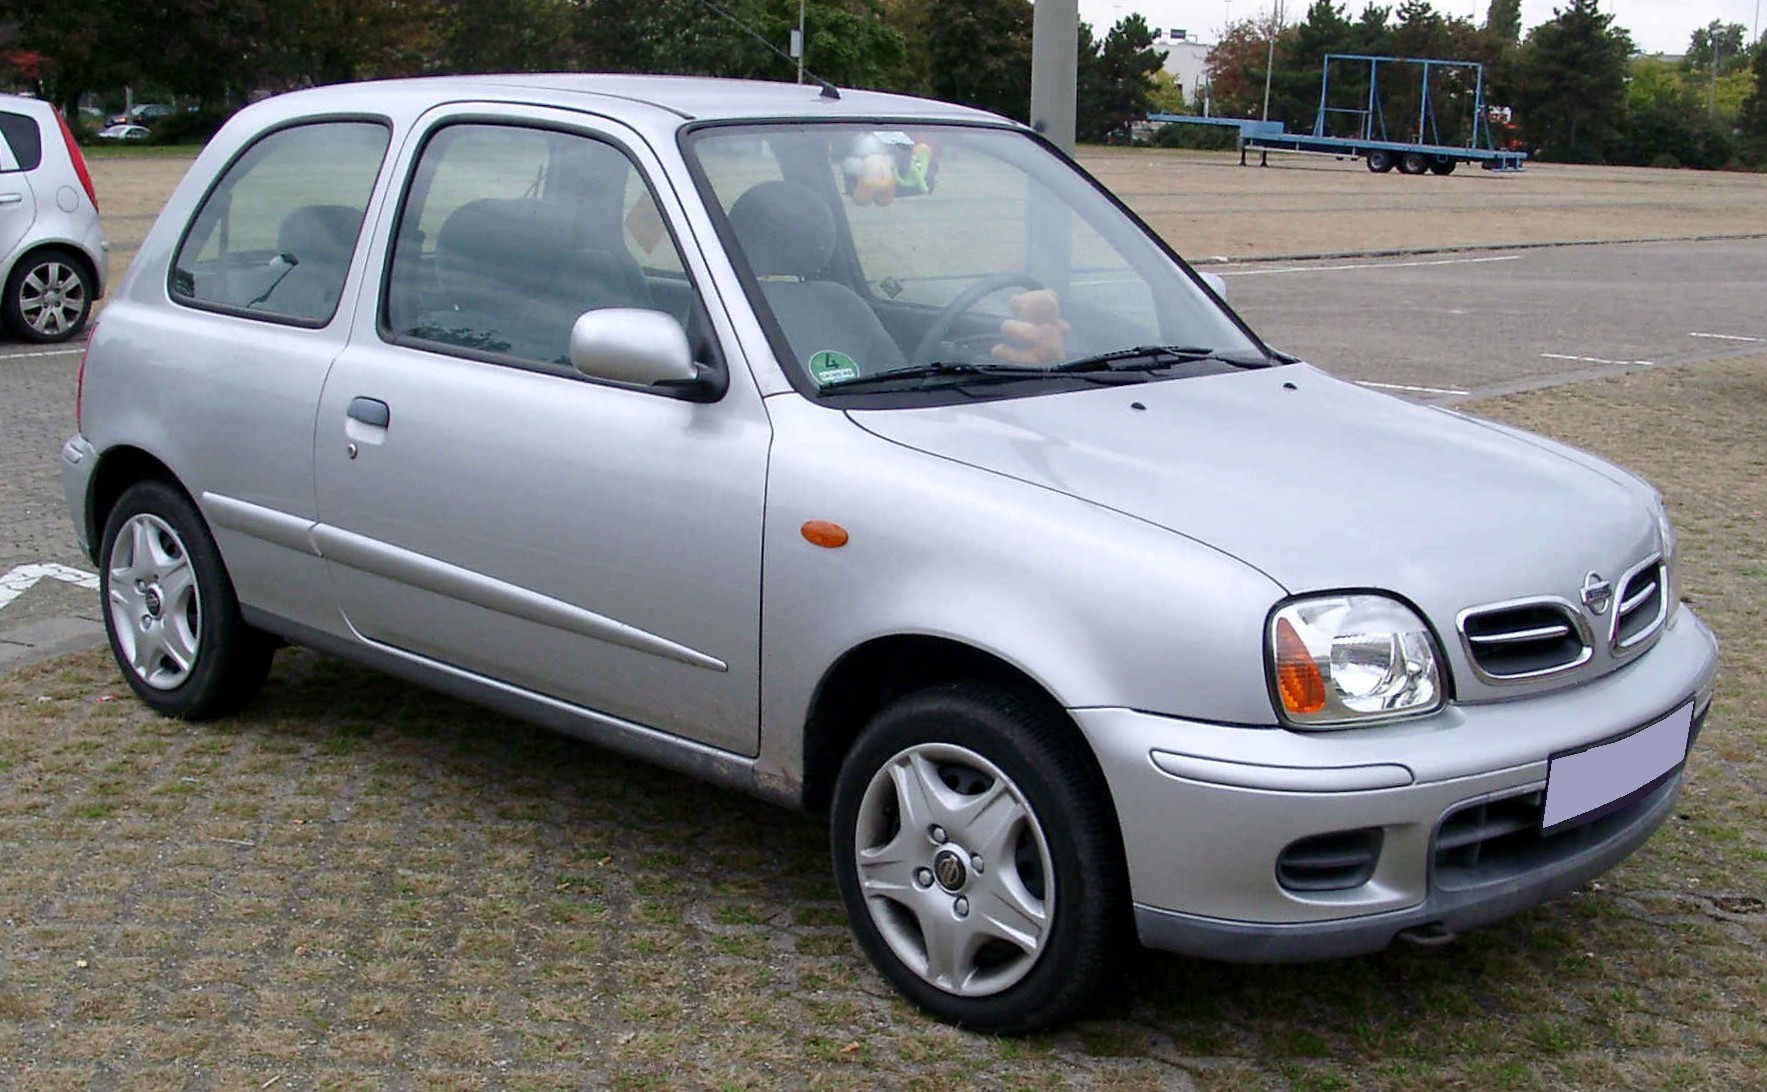 1995 nissan micra k11 pictures information and specs auto. Black Bedroom Furniture Sets. Home Design Ideas